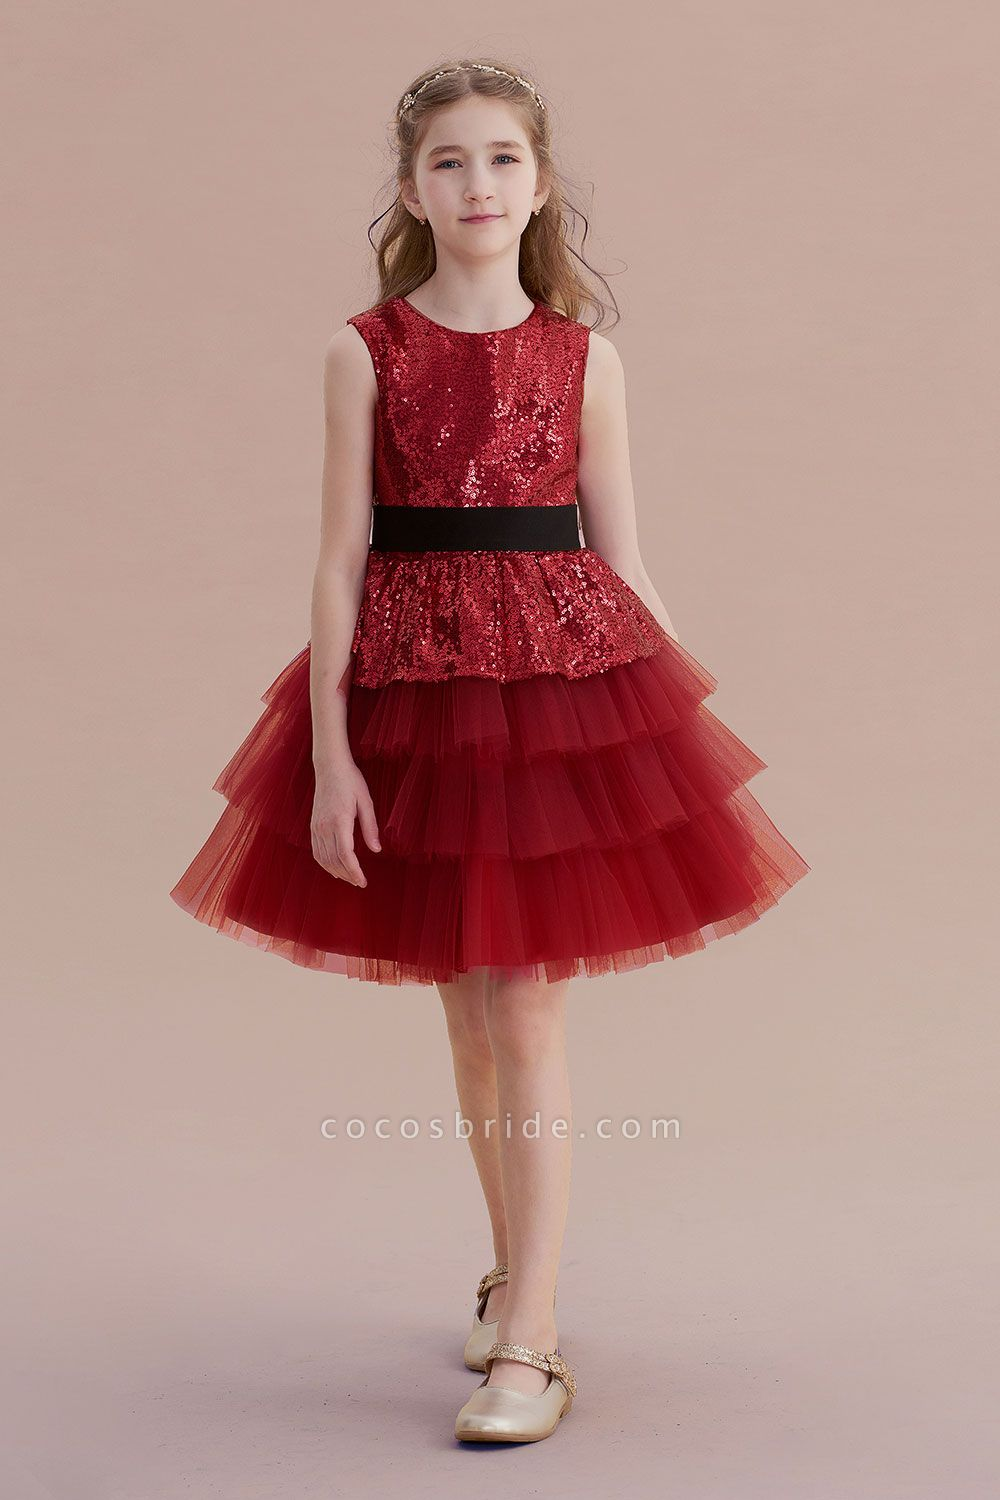 Tulle Sequins A-line Knee Length Flower Girl Dress